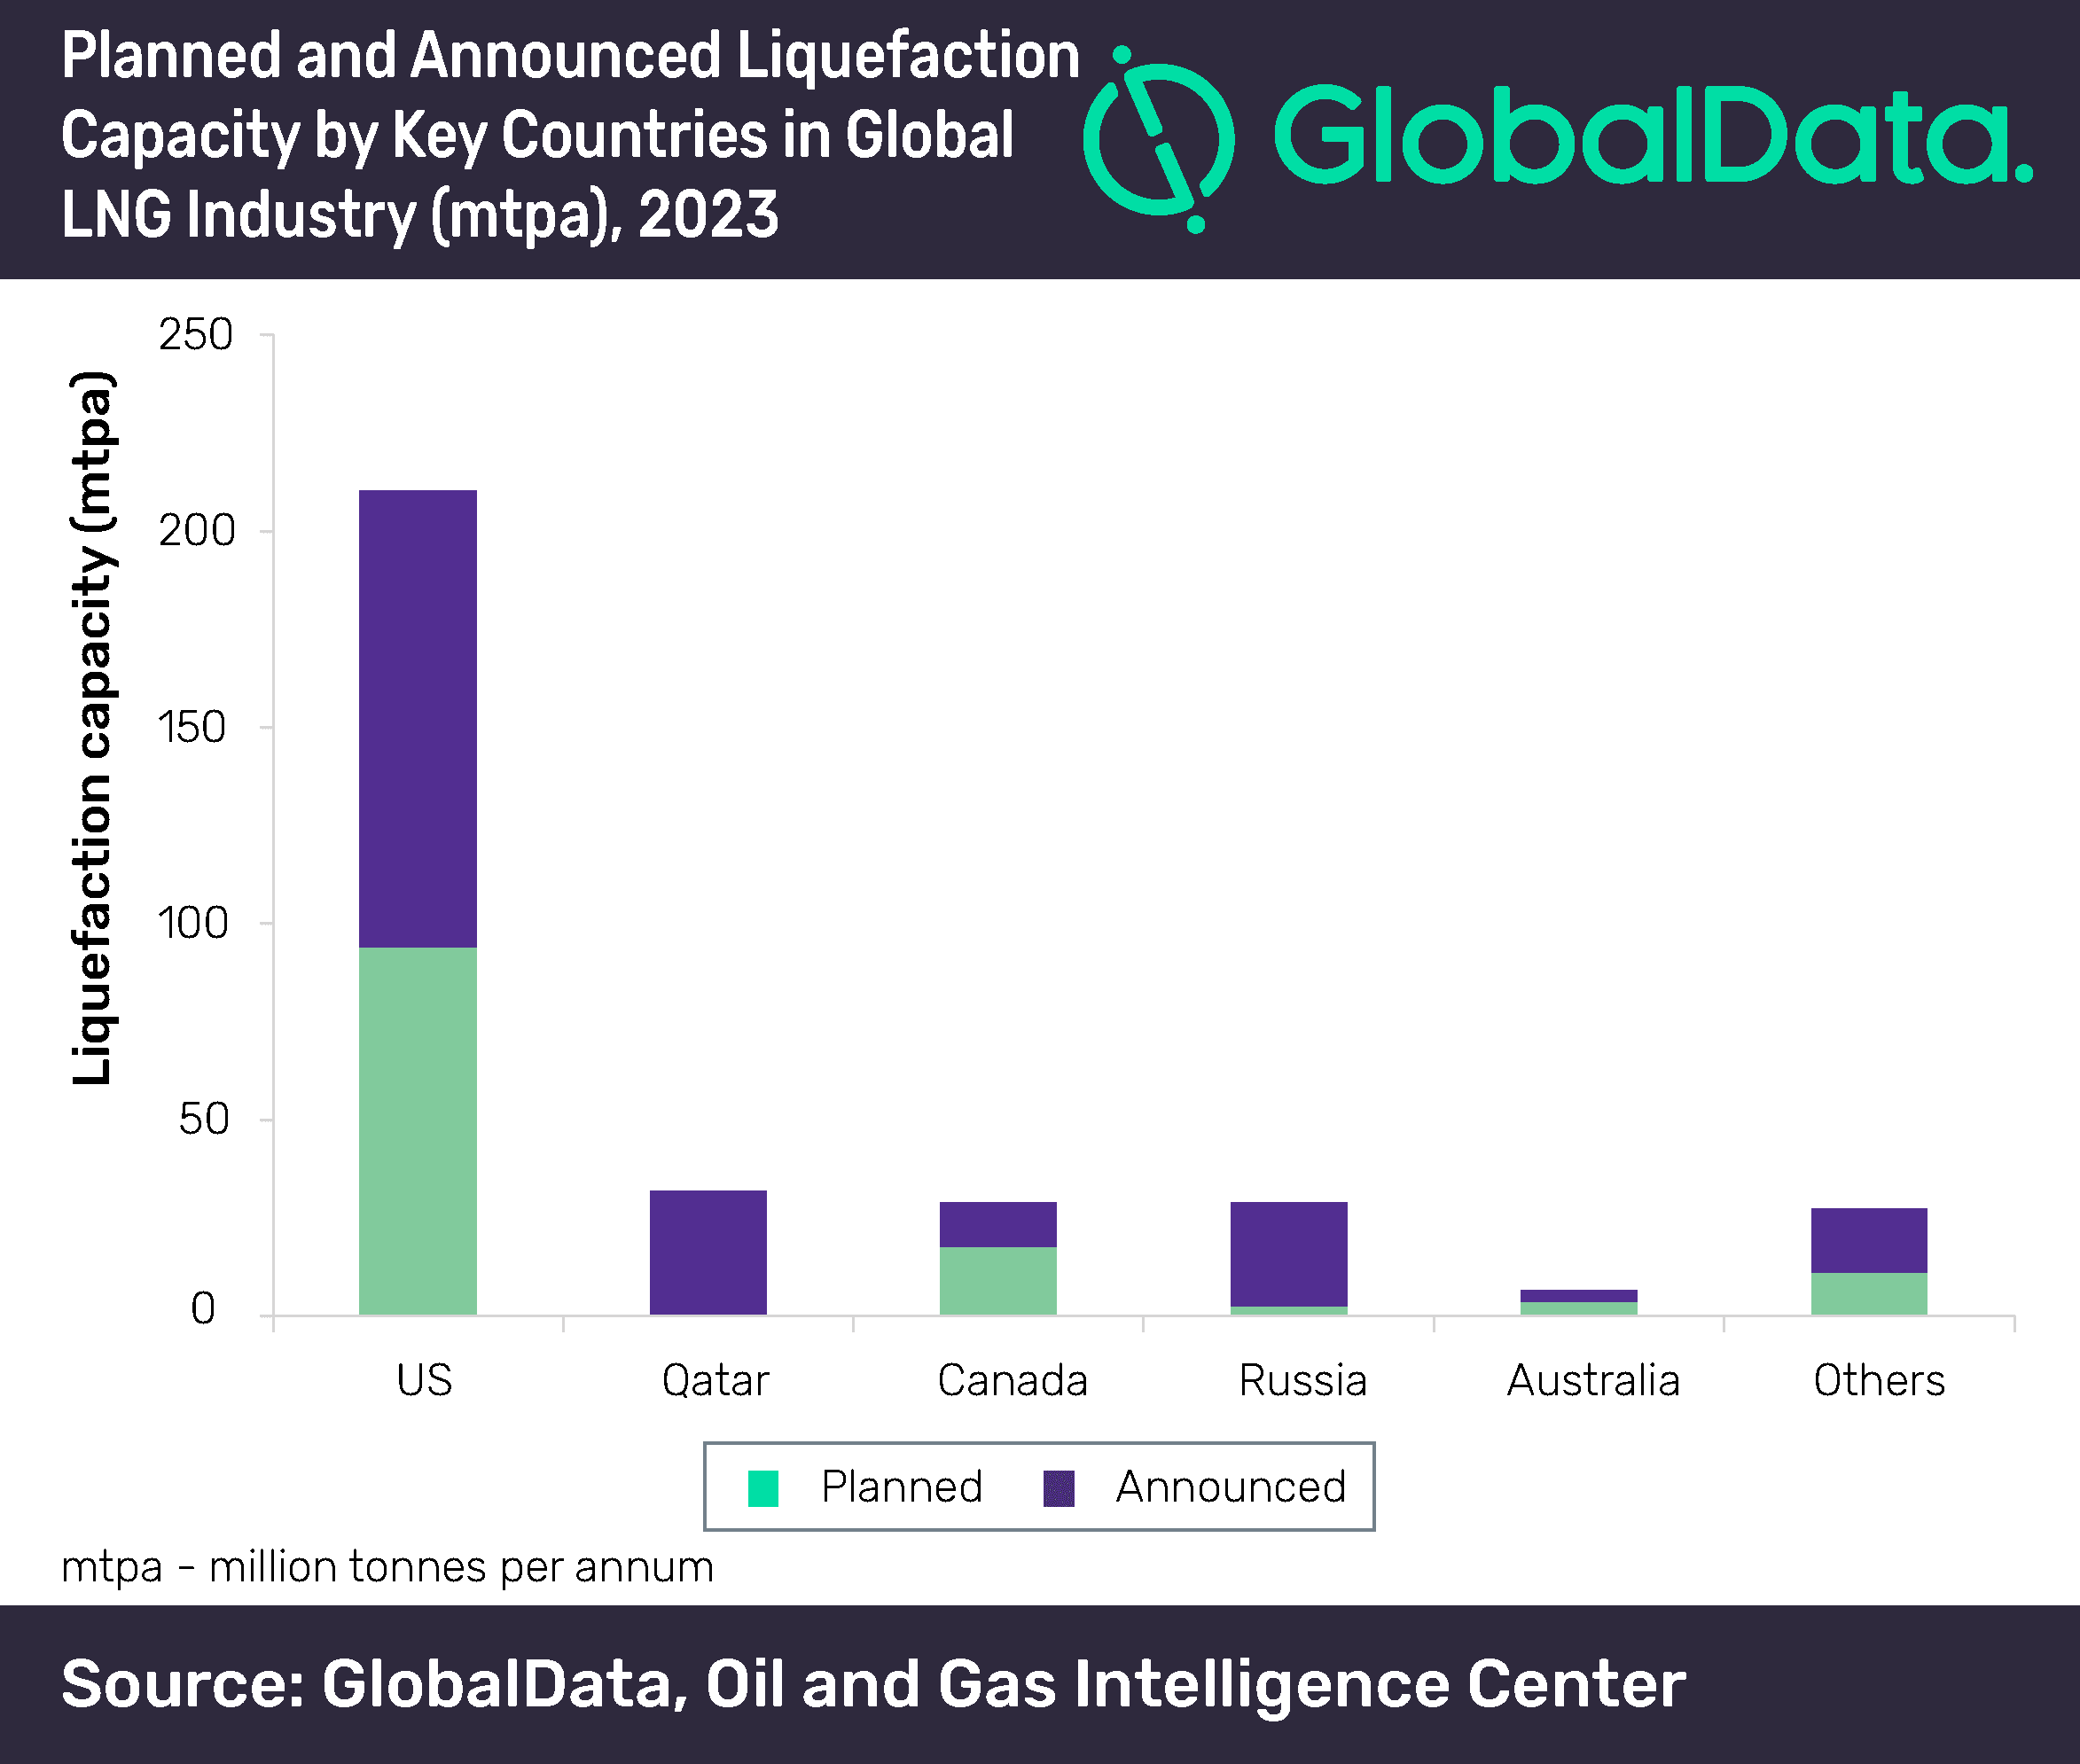 US and India lead new-build capacity growth in global LNG liquefaction and regasification industries